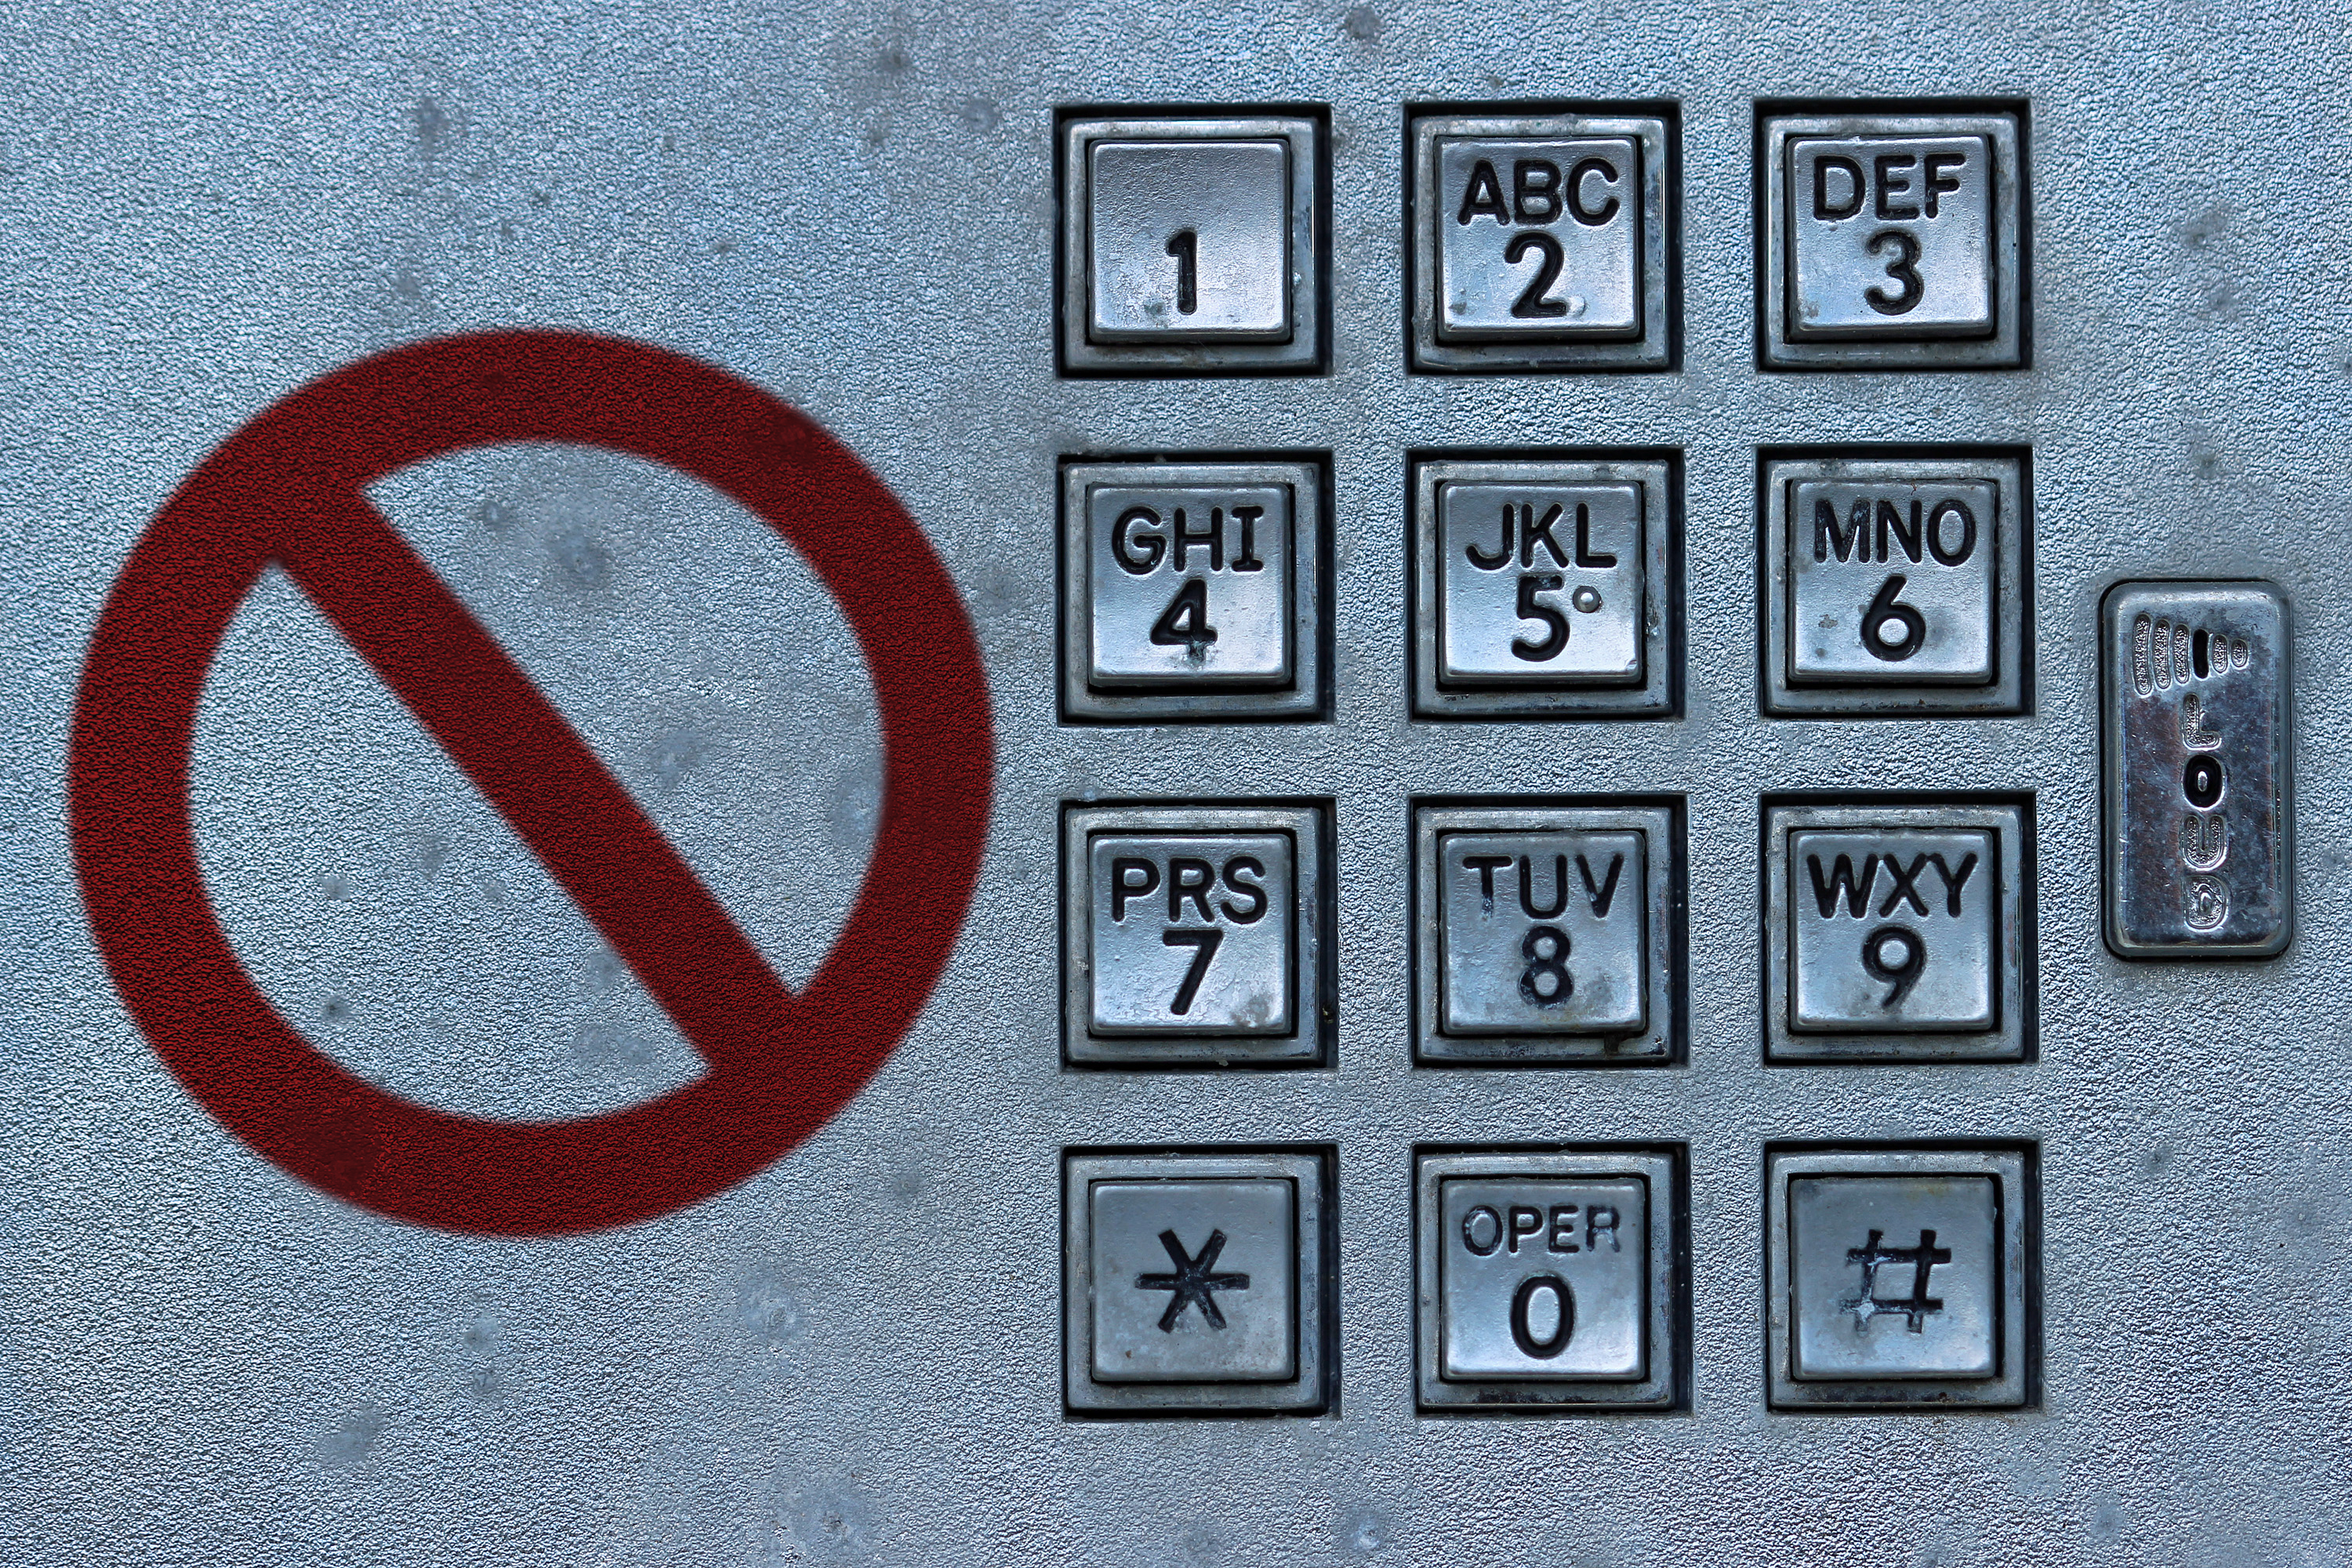 Bad Call to Action: Phone Numbers